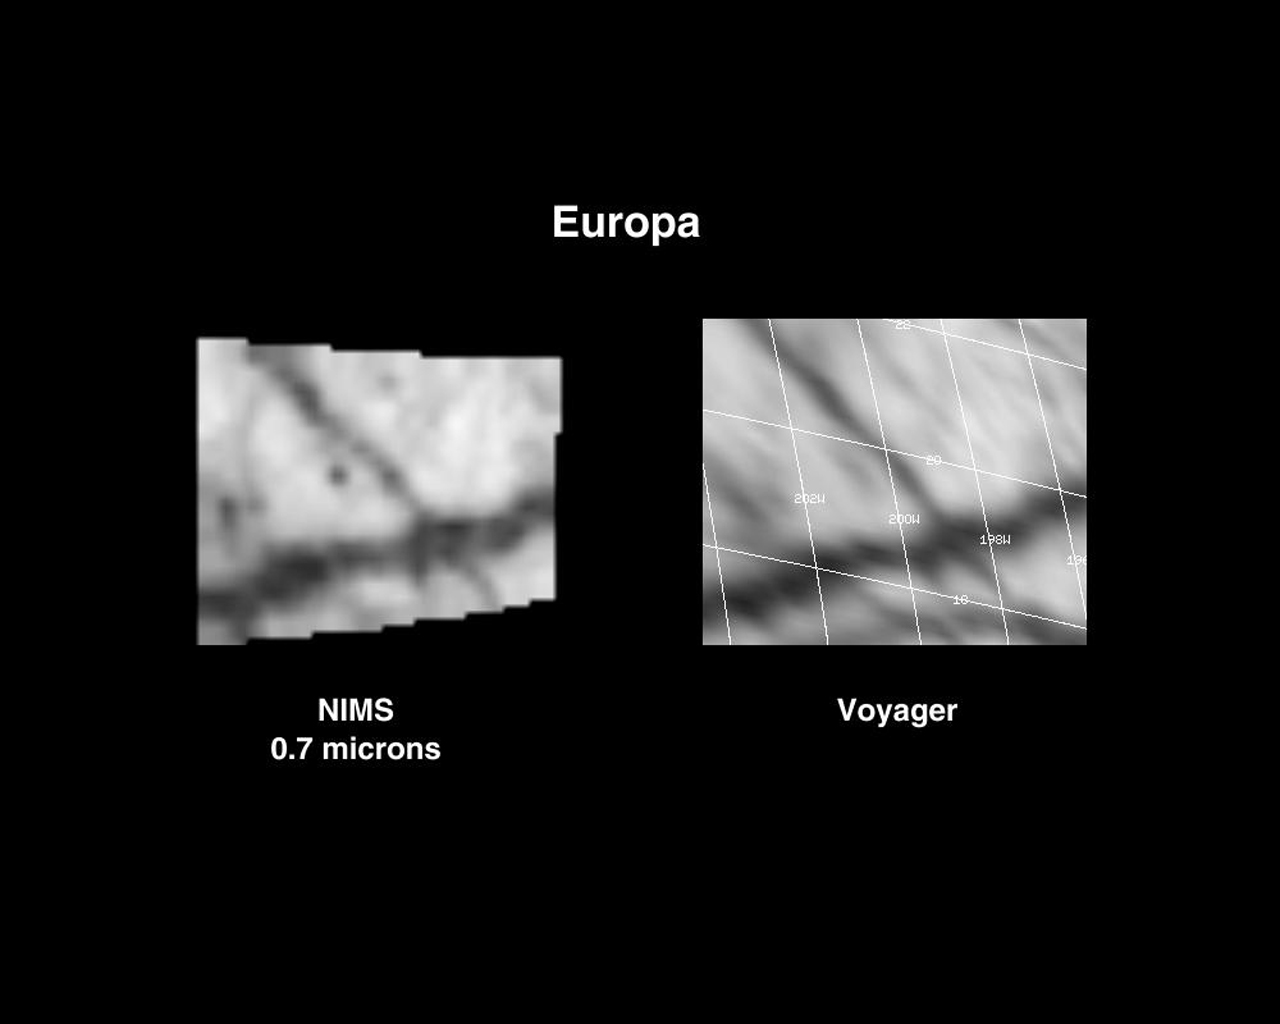 These observations of NASA's Voyager and Galileo's Near Infrared Mapping Spectrometer shows the interception of two lineas or fractures on the Northern hemisphere of Europa.